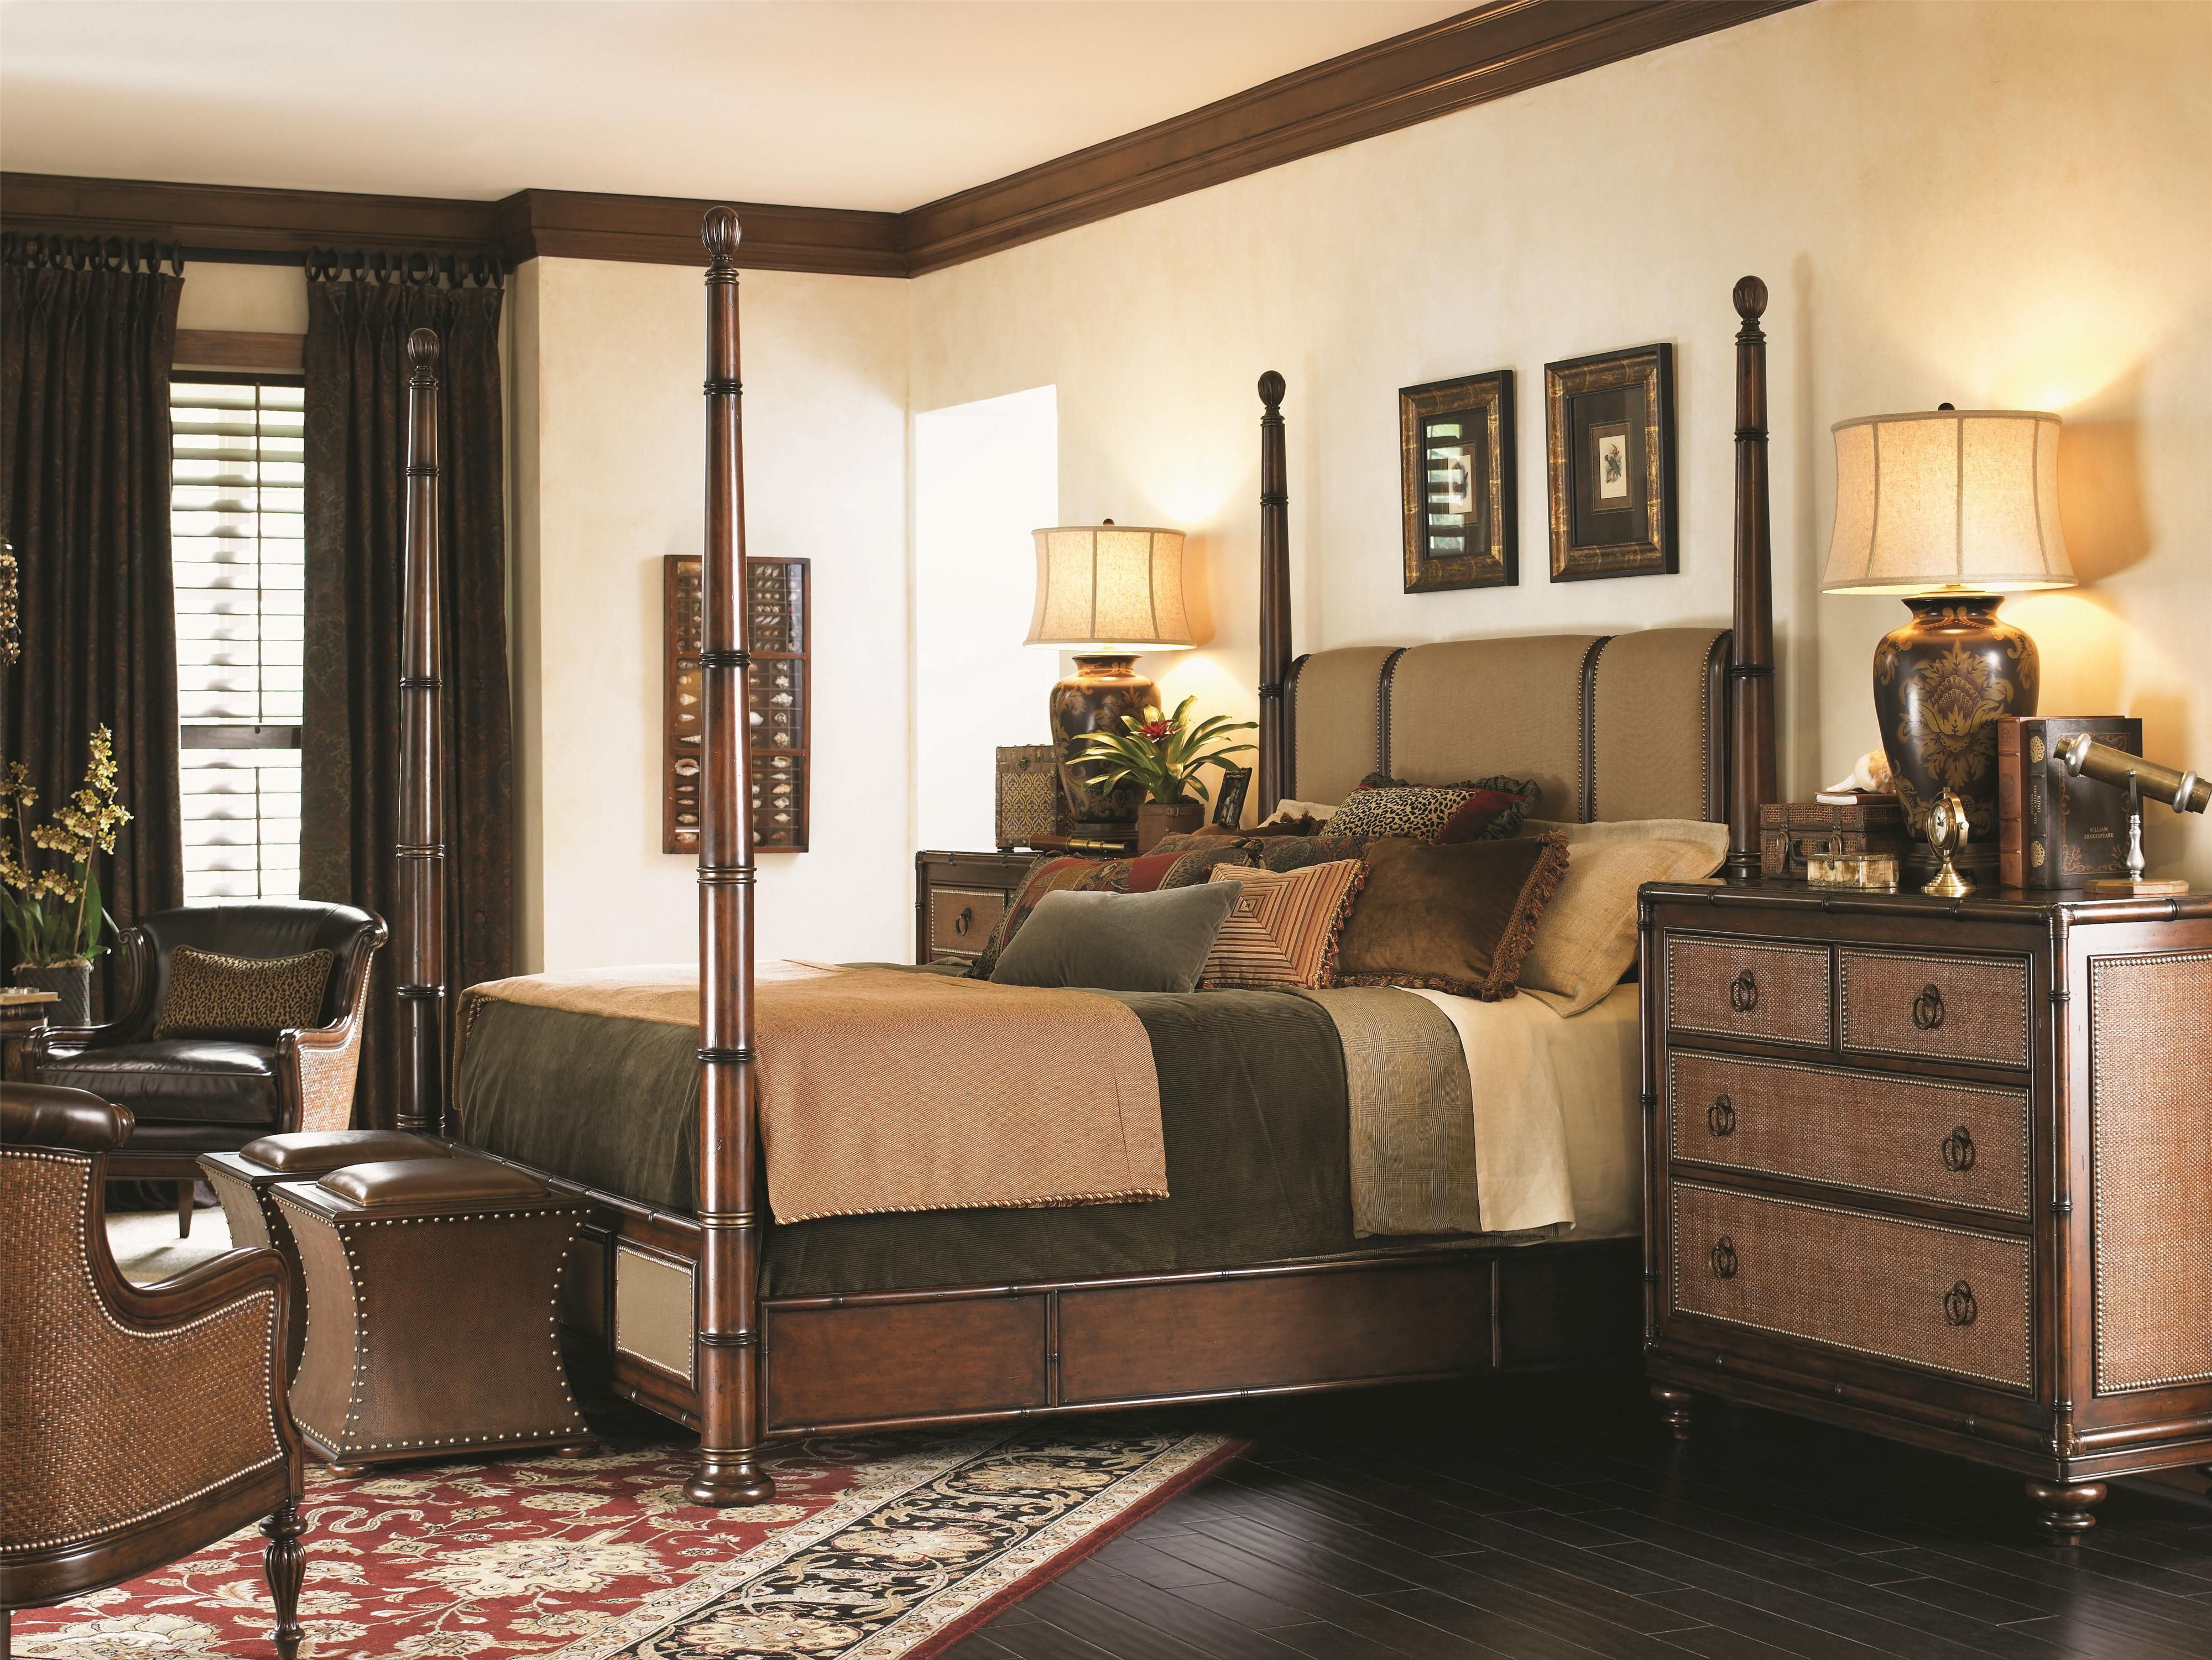 Tommy Bahama Bedroom Decorating Ideas - Bedroom |